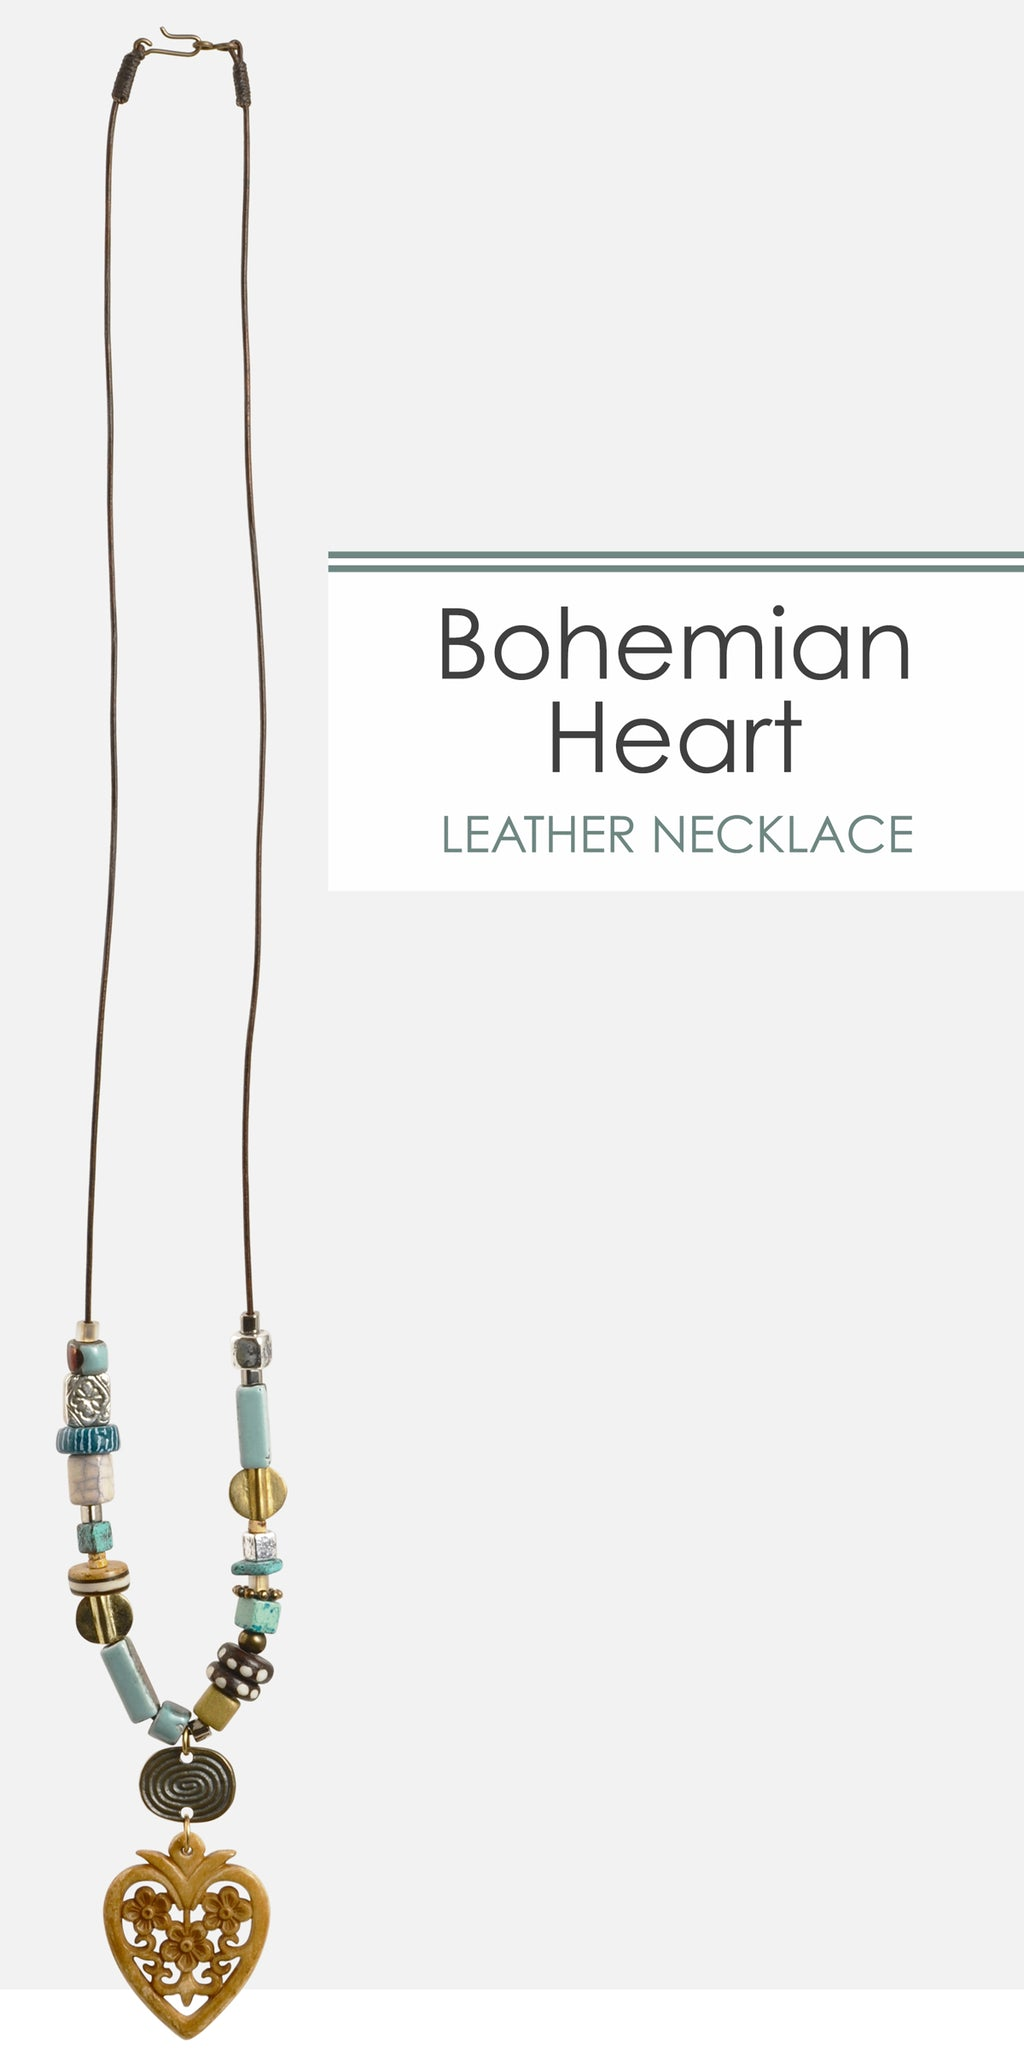 Bohemian Heart Leather Necklace Tamara Scott Designs